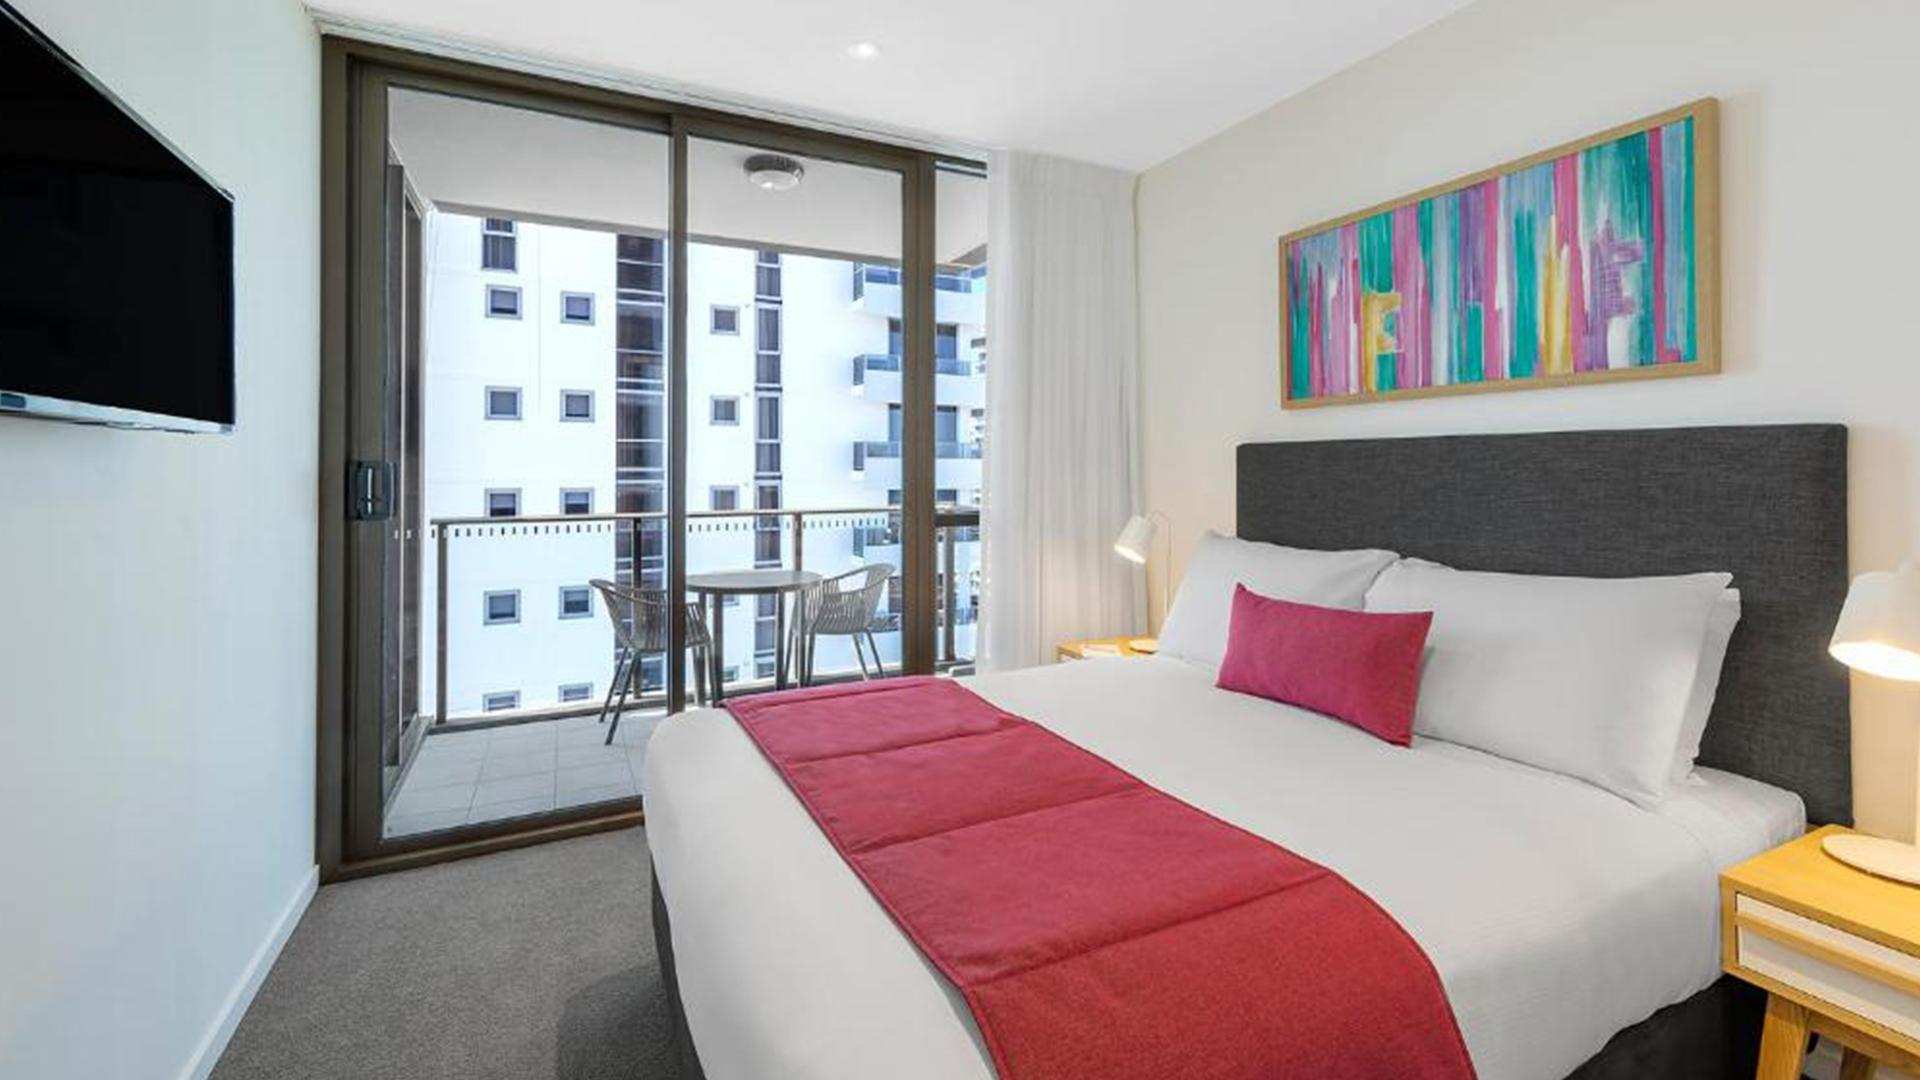 One-Bedroom Suite image 1 at AVANI Broadbeach Gold Coast Residences by City of Gold Coast, Queensland, Australia